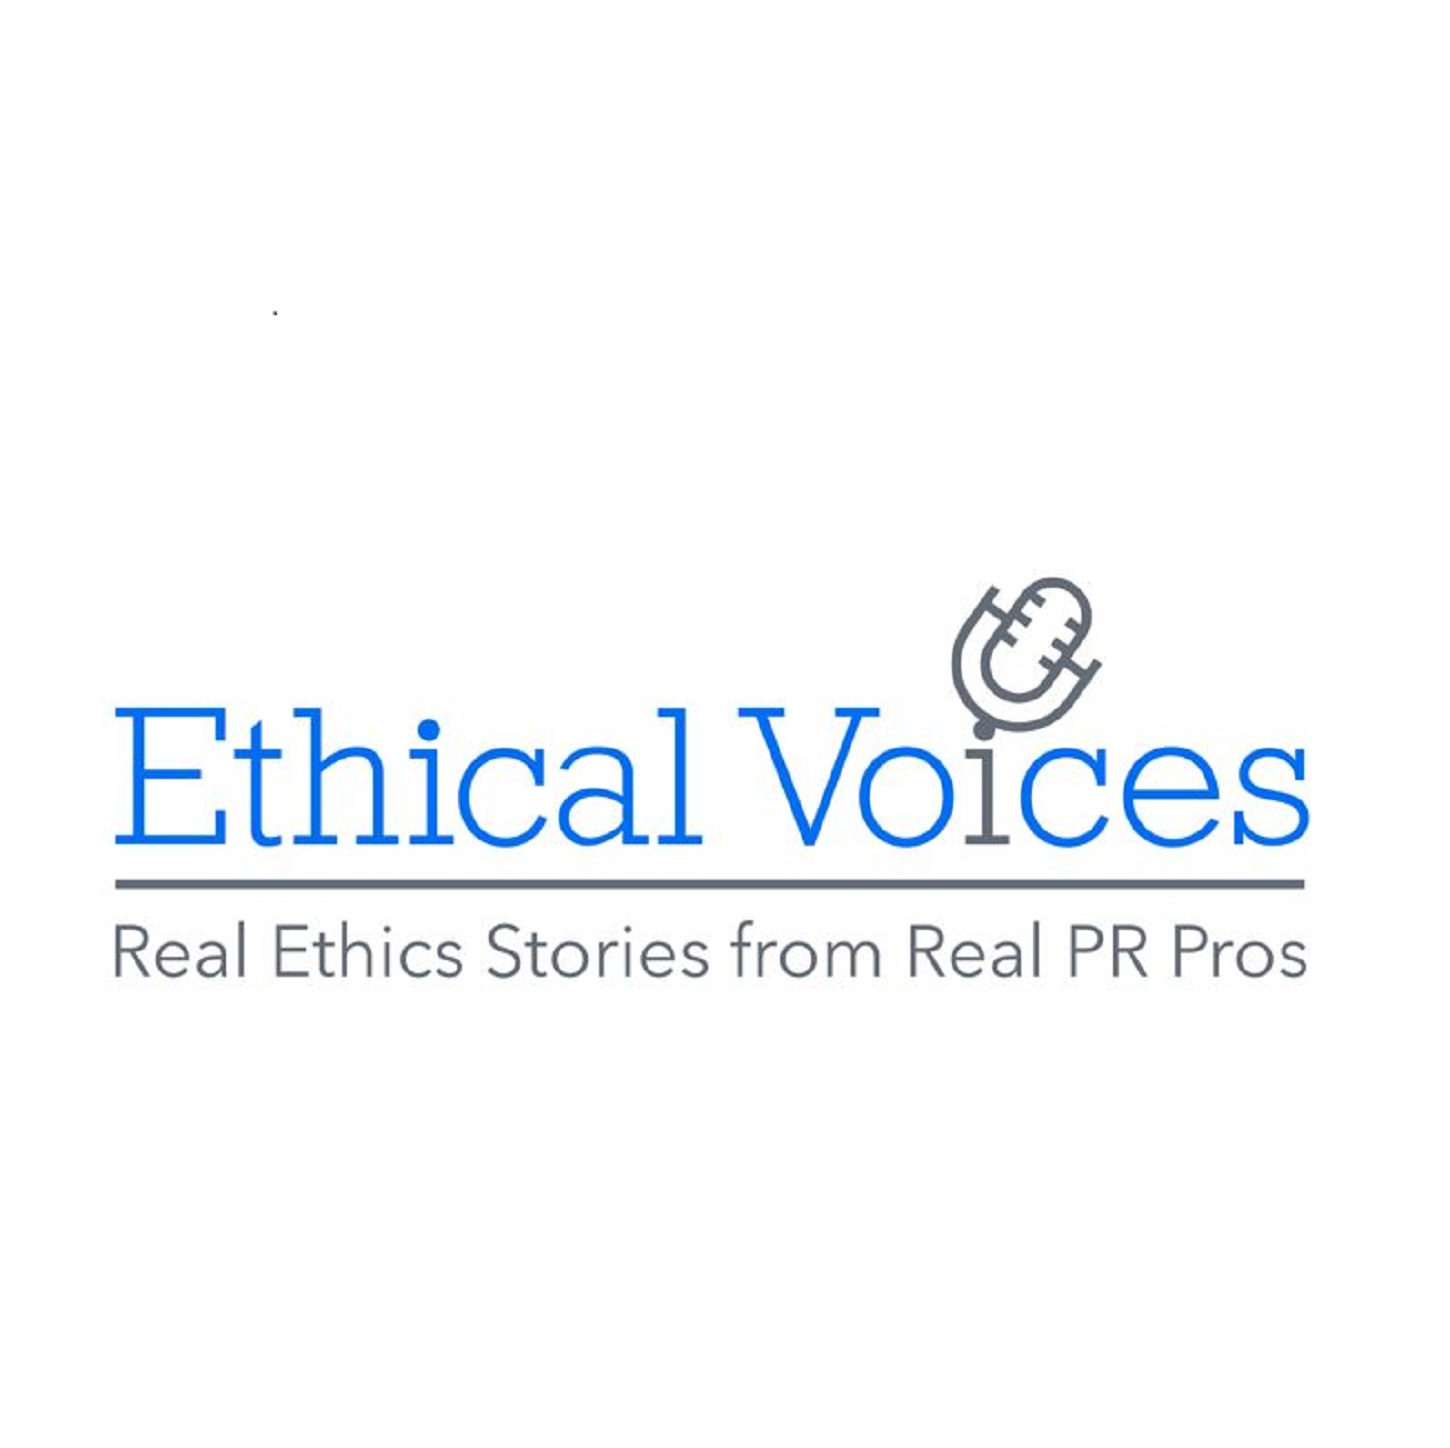 Global Ethics and Technology Issues - How Public Relations Can Move A Company From Where It is to Where it Wants to Be show art